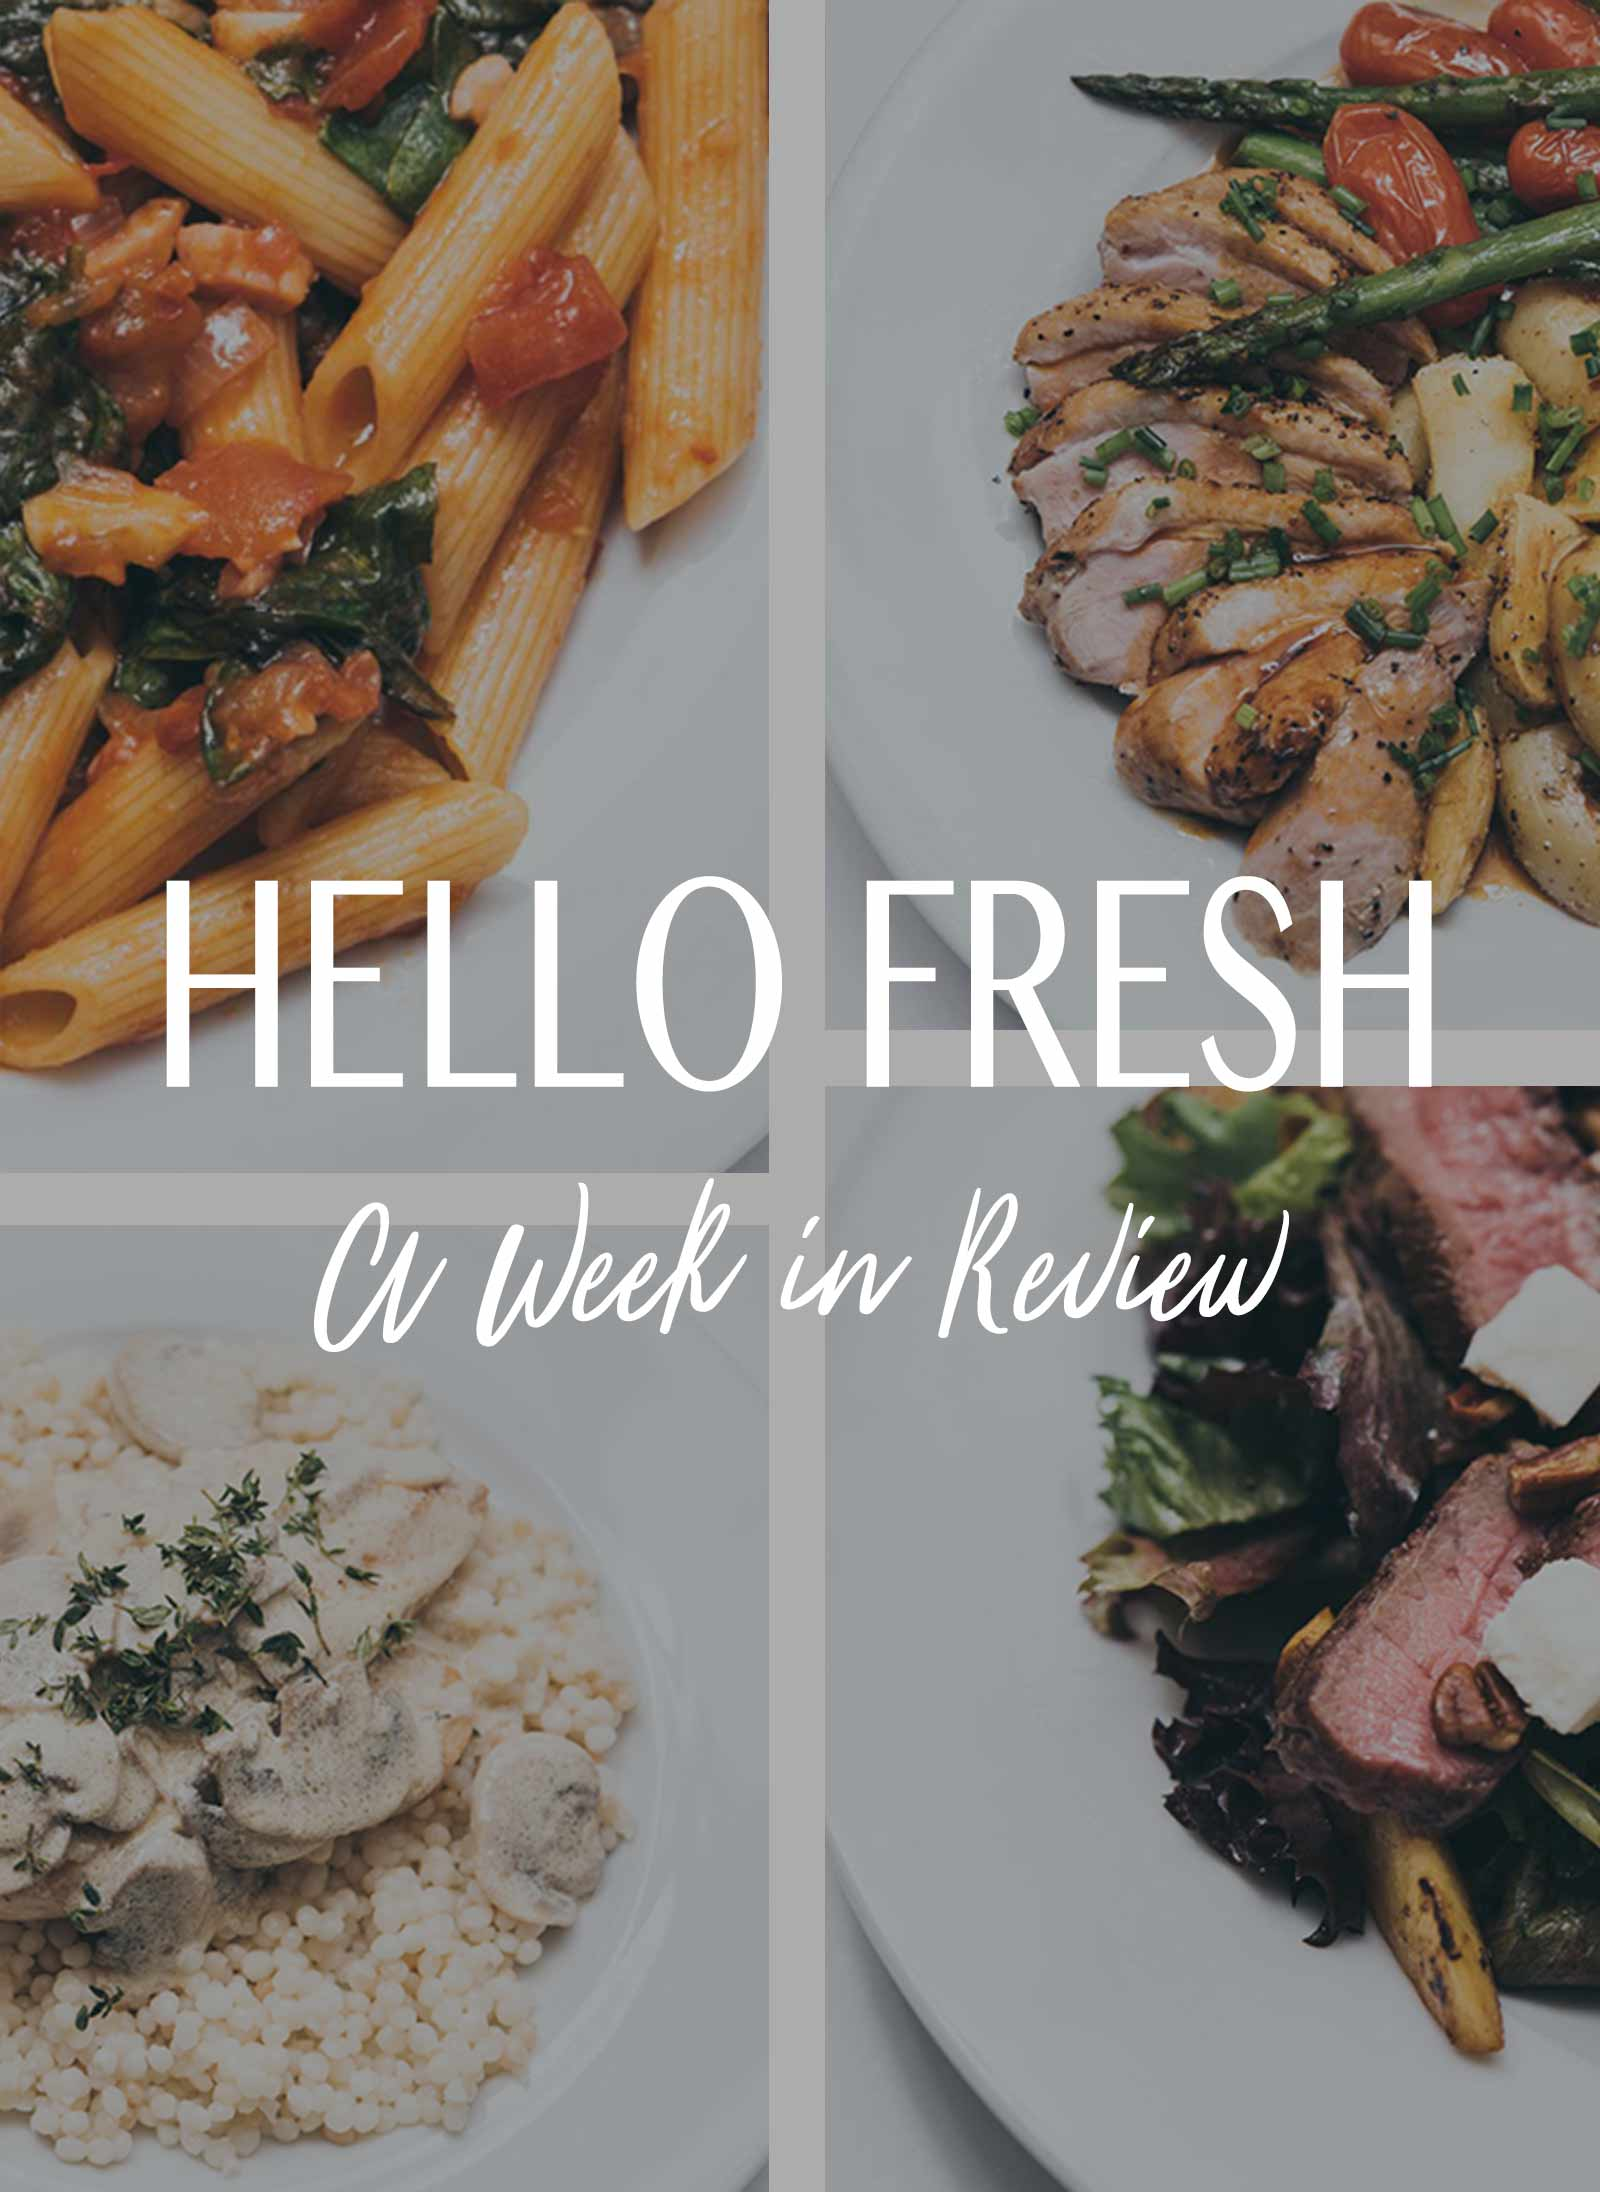 Meal Kit Delivery Service Hellofresh Discounted Price April 2020